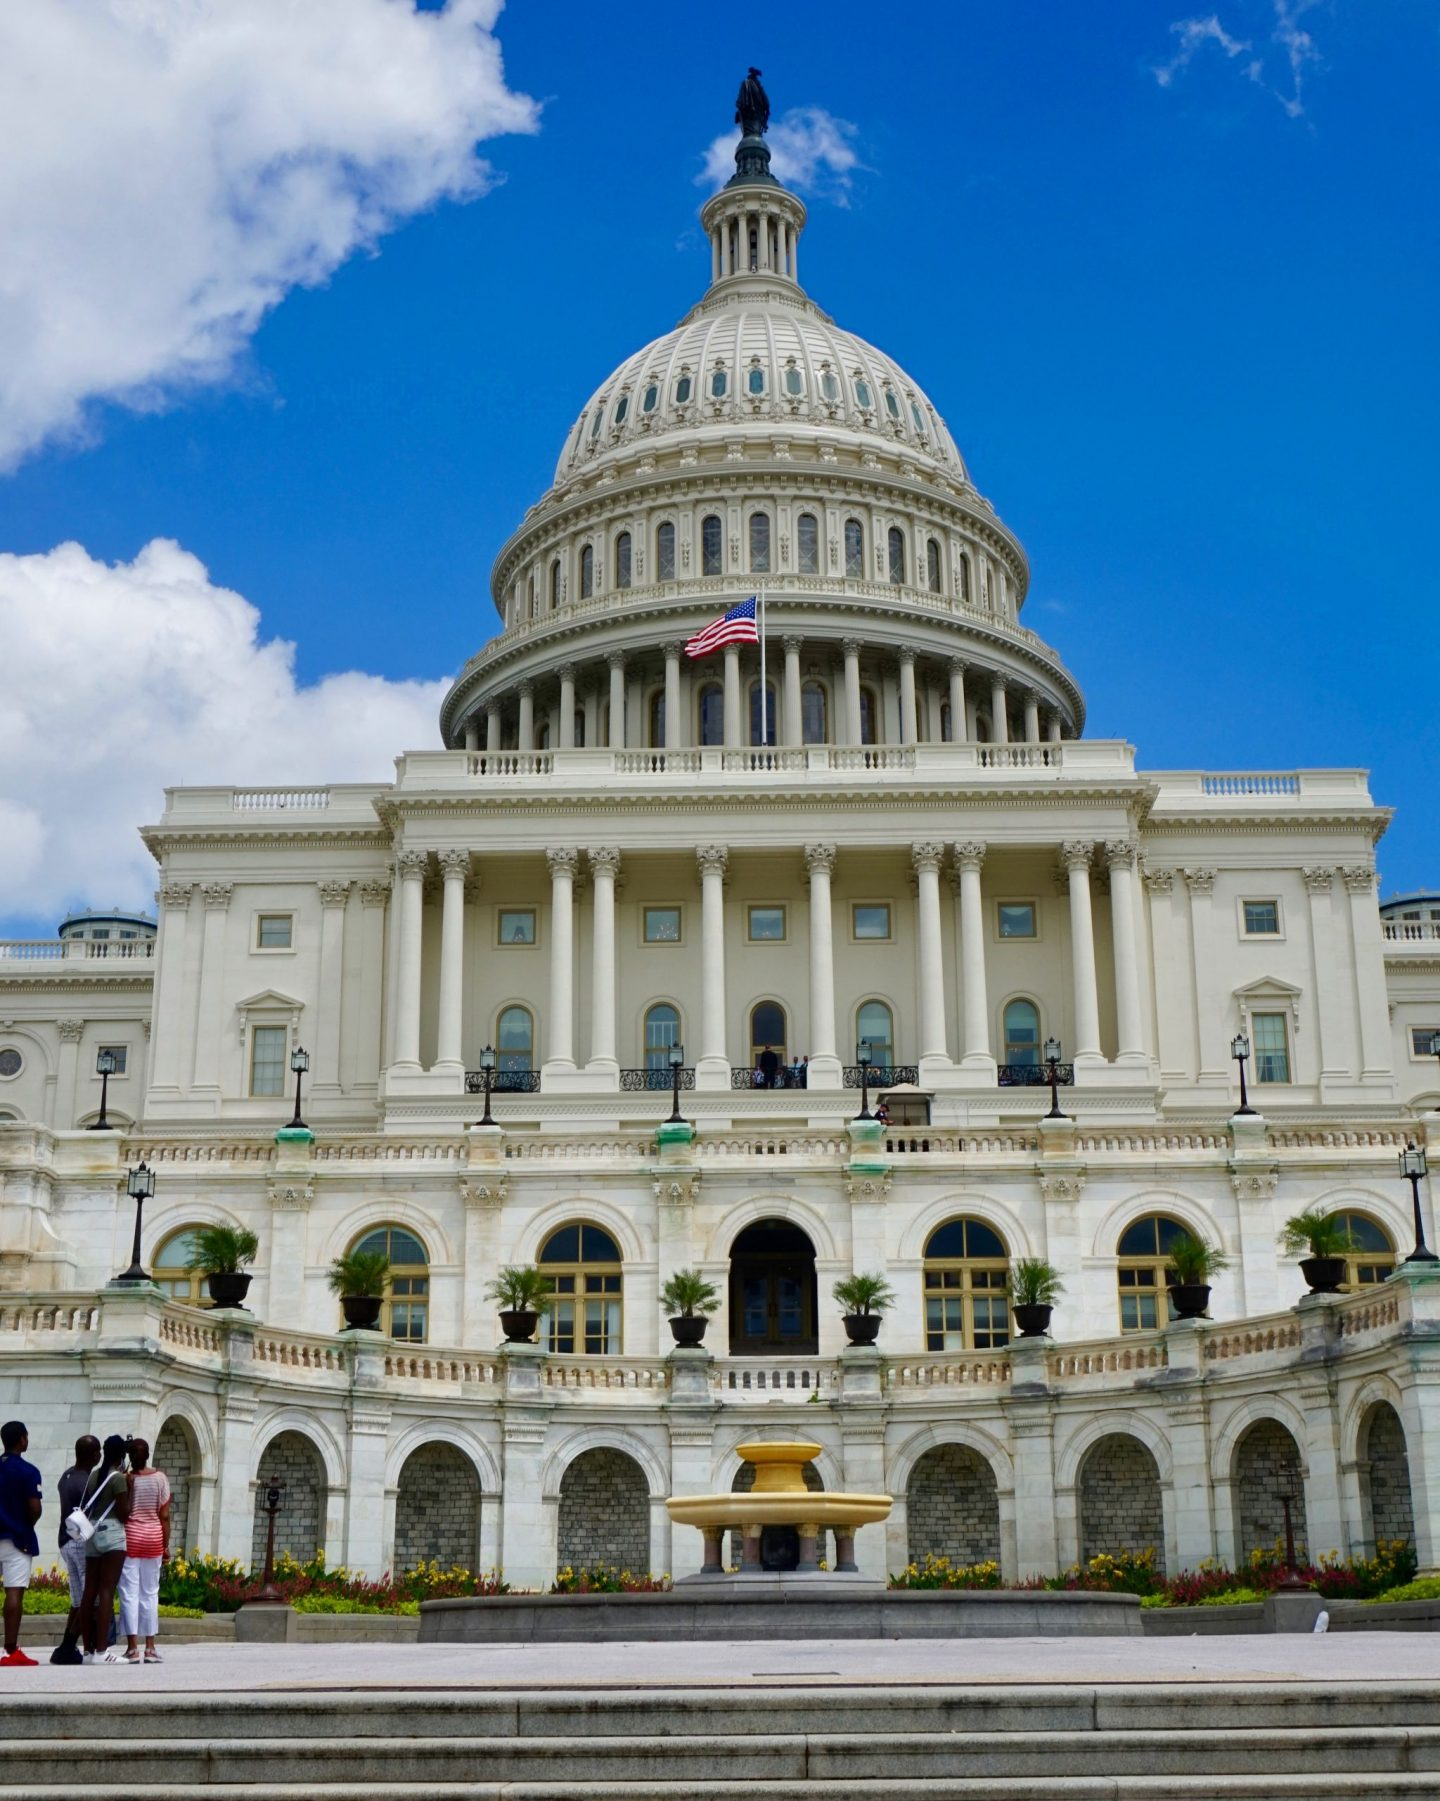 visit the capitol building in washington dc